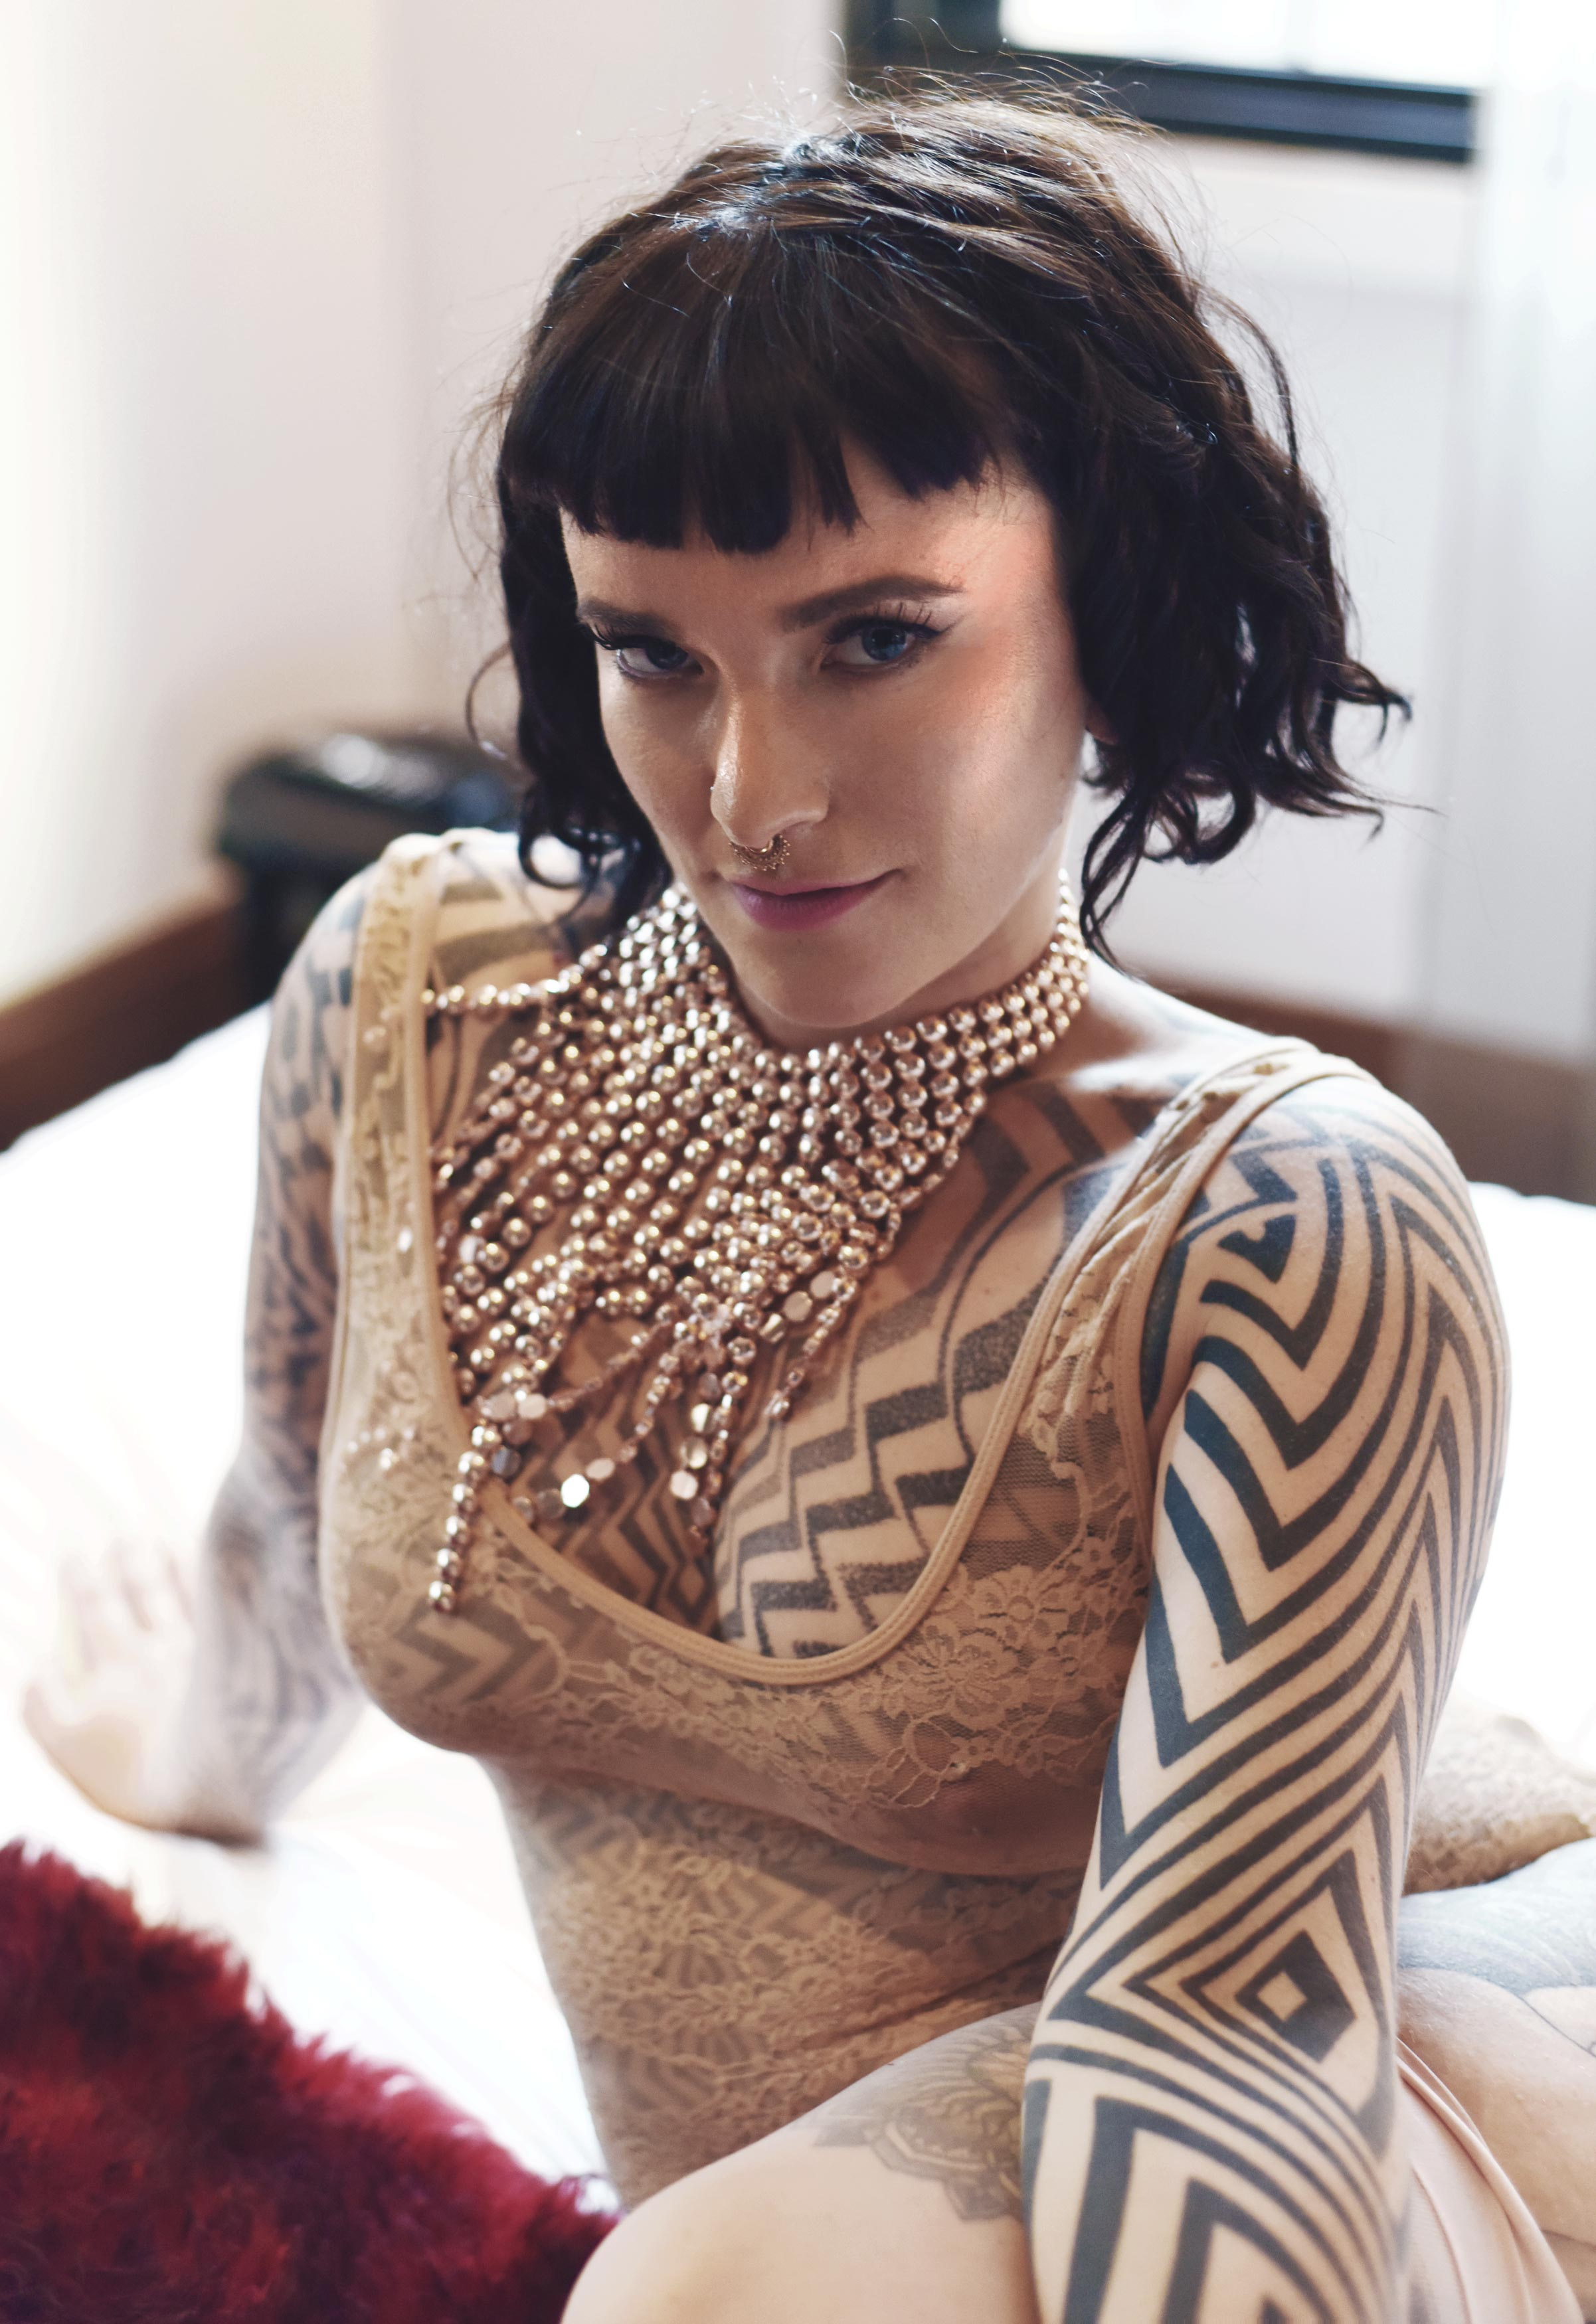 Tallula darling tattooed fetish escort, Gfe escort, kinky escort, luxury escort, independent escort, Australian escort